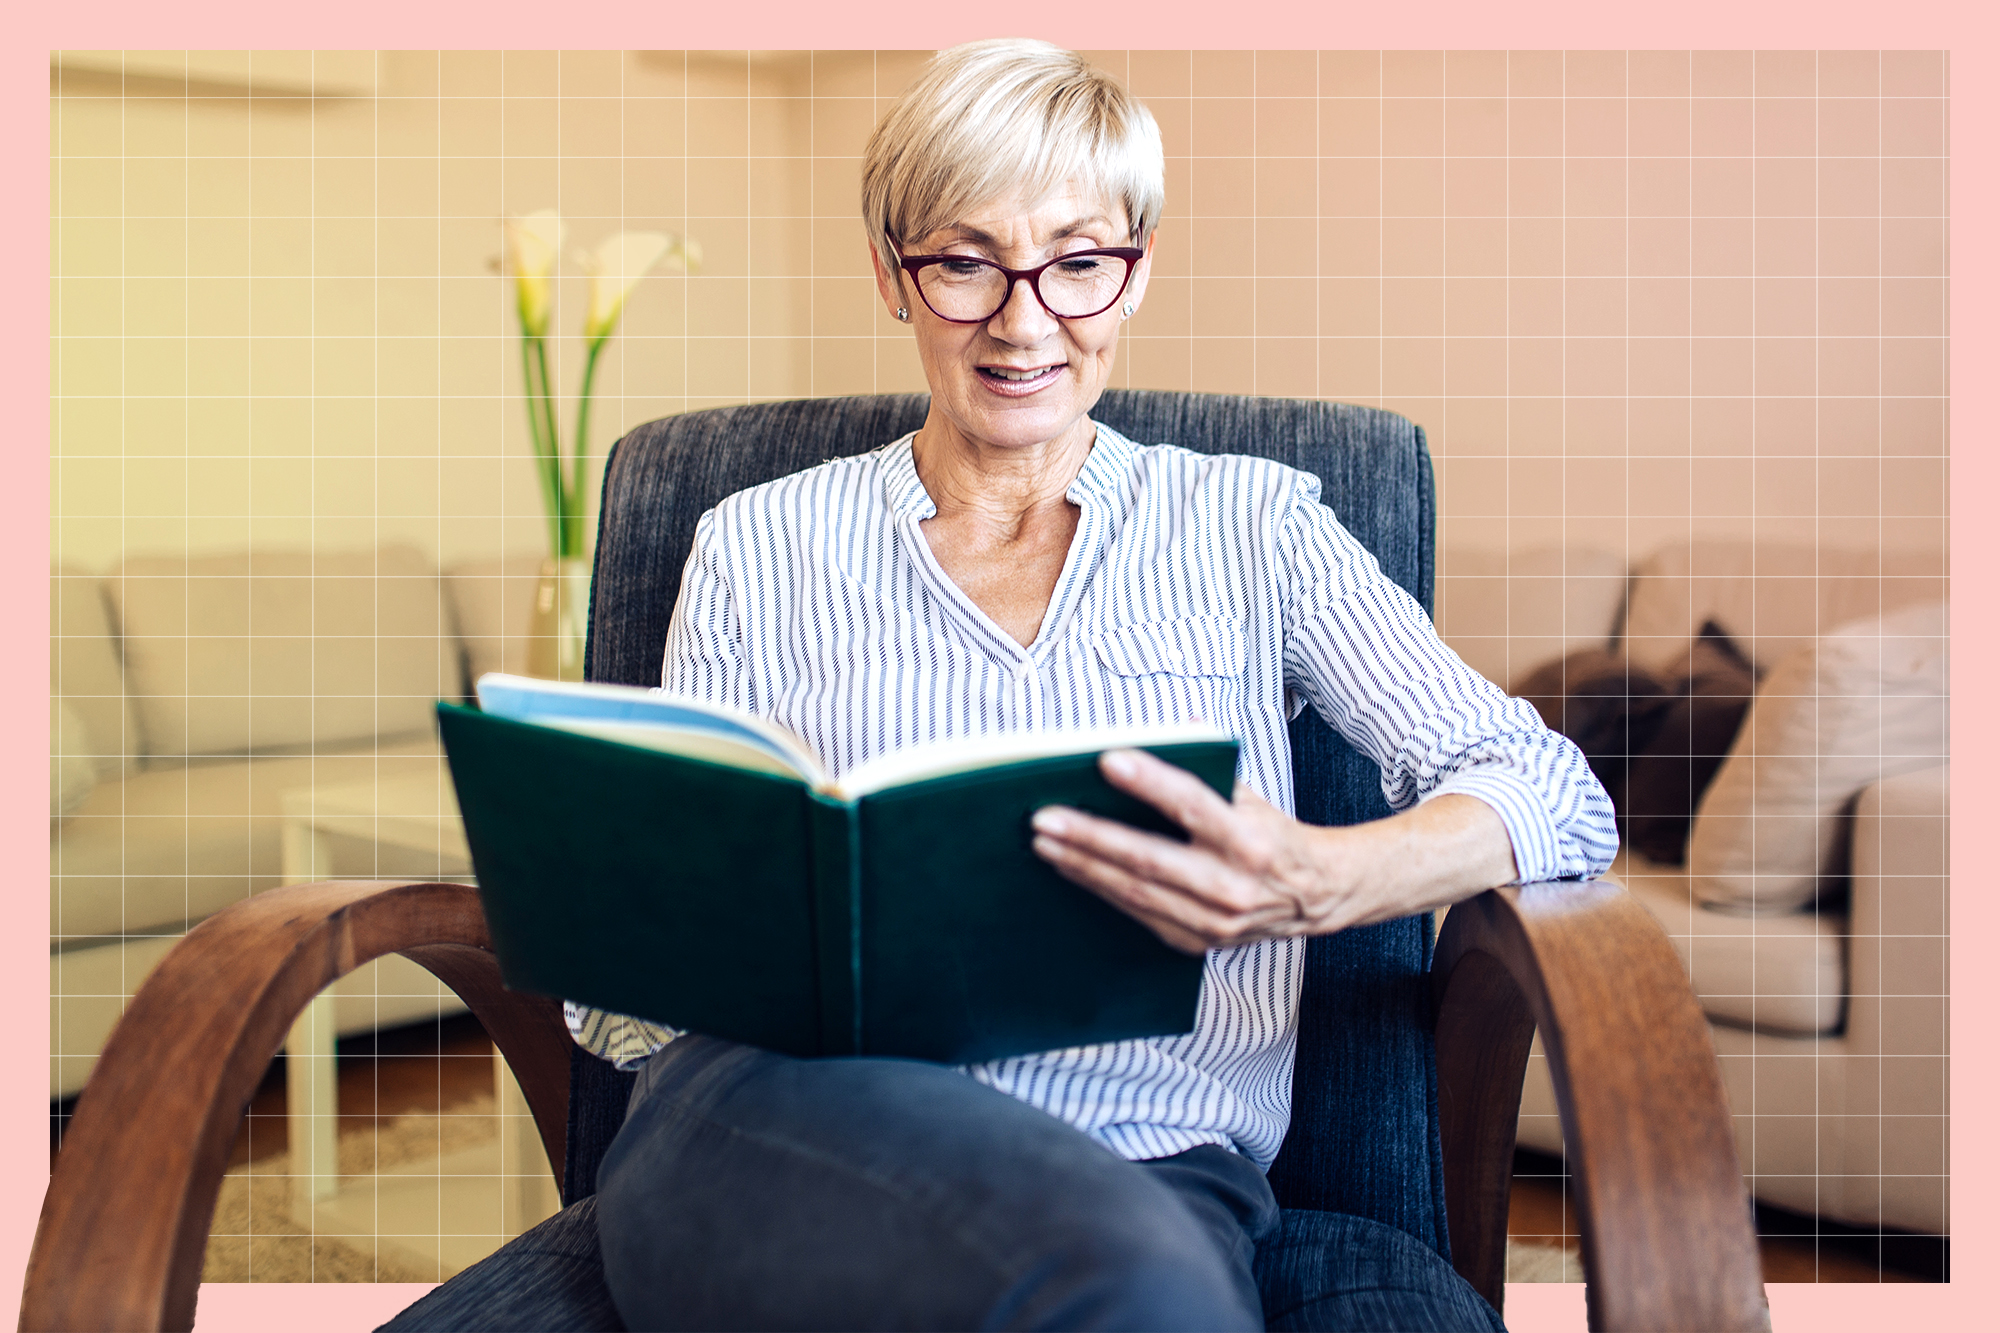 Portrait of a senior woman reading a book at home